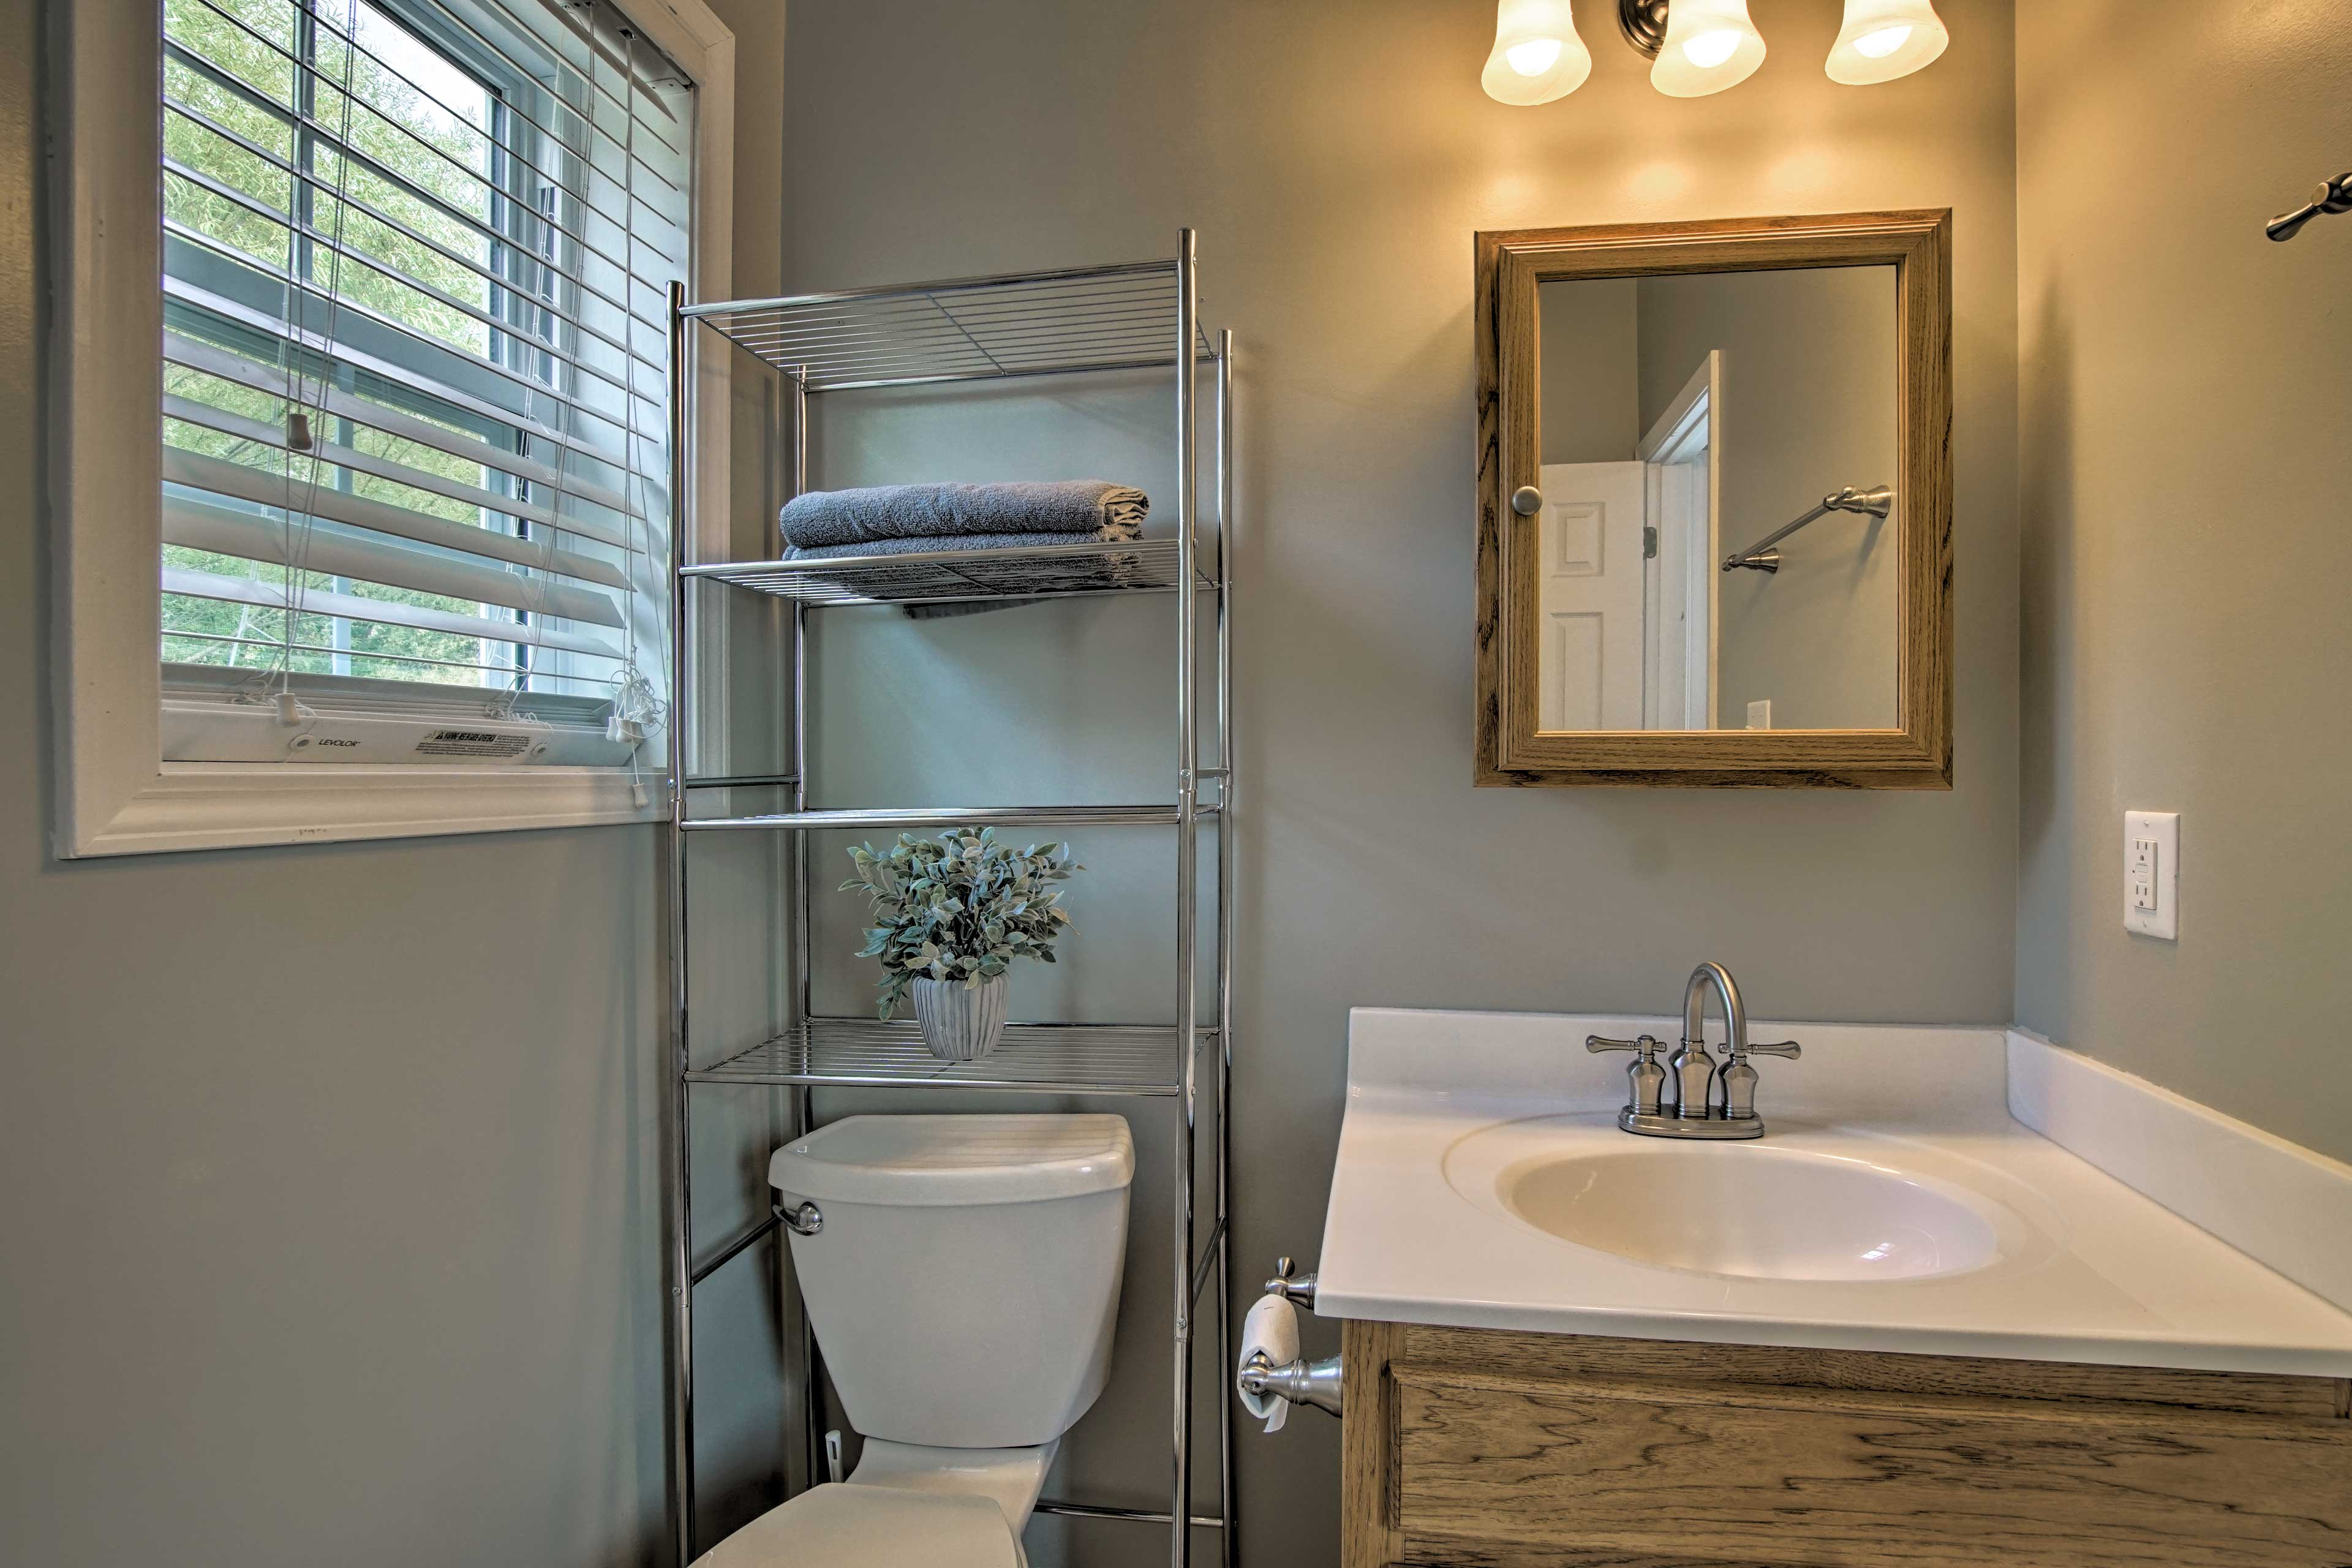 The 2 bathrooms offer abundant space to get ready!